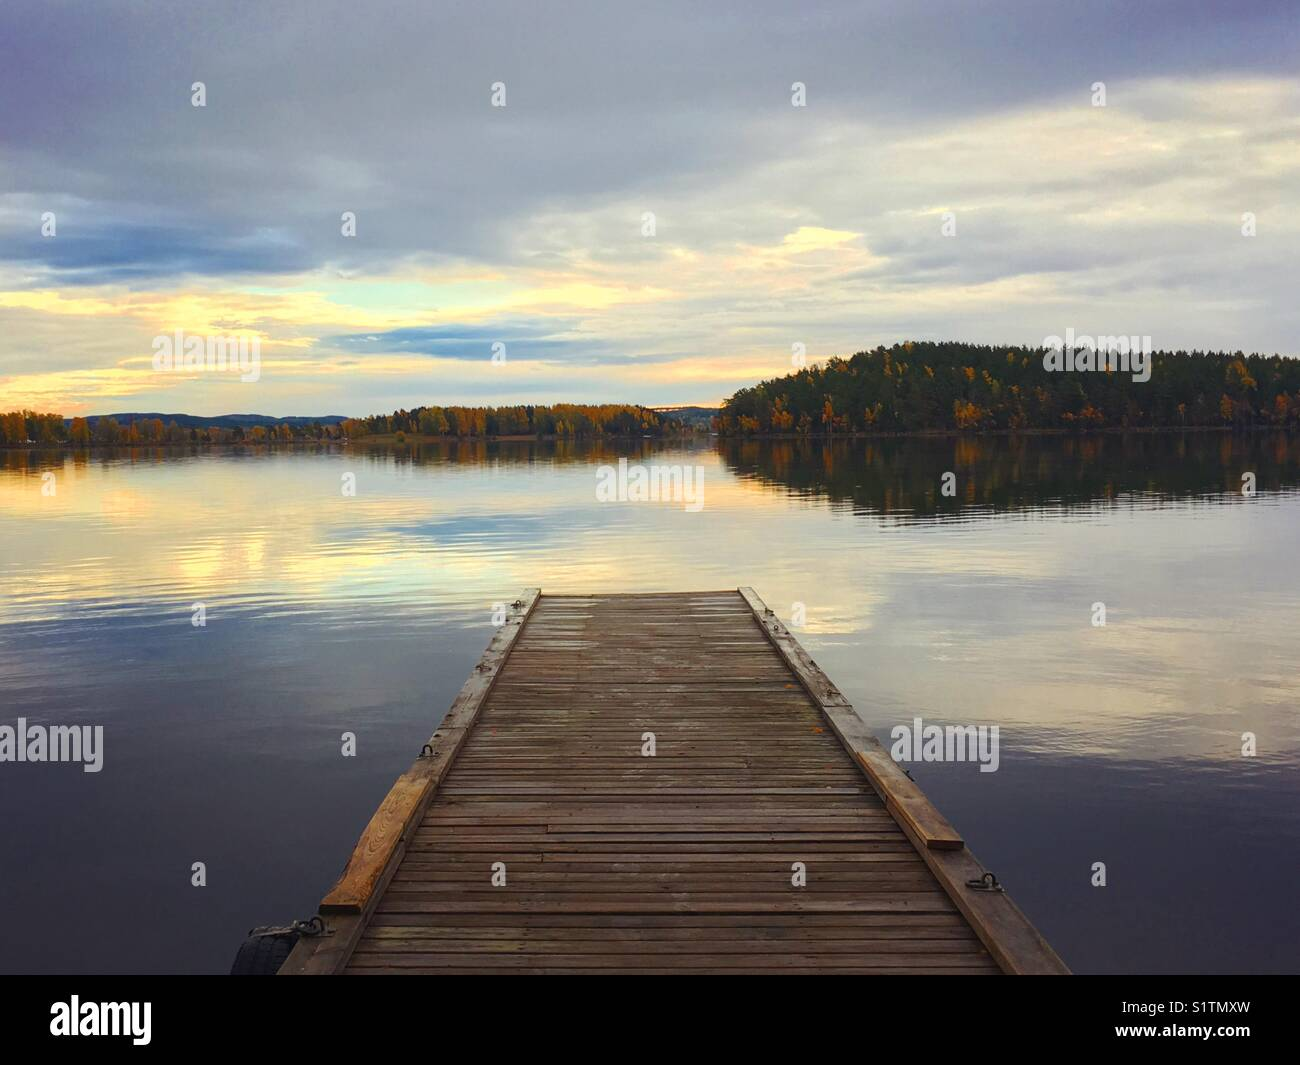 A beautiful sunset over a peaceful lake in Dalarna, Sweden. - Stock Image